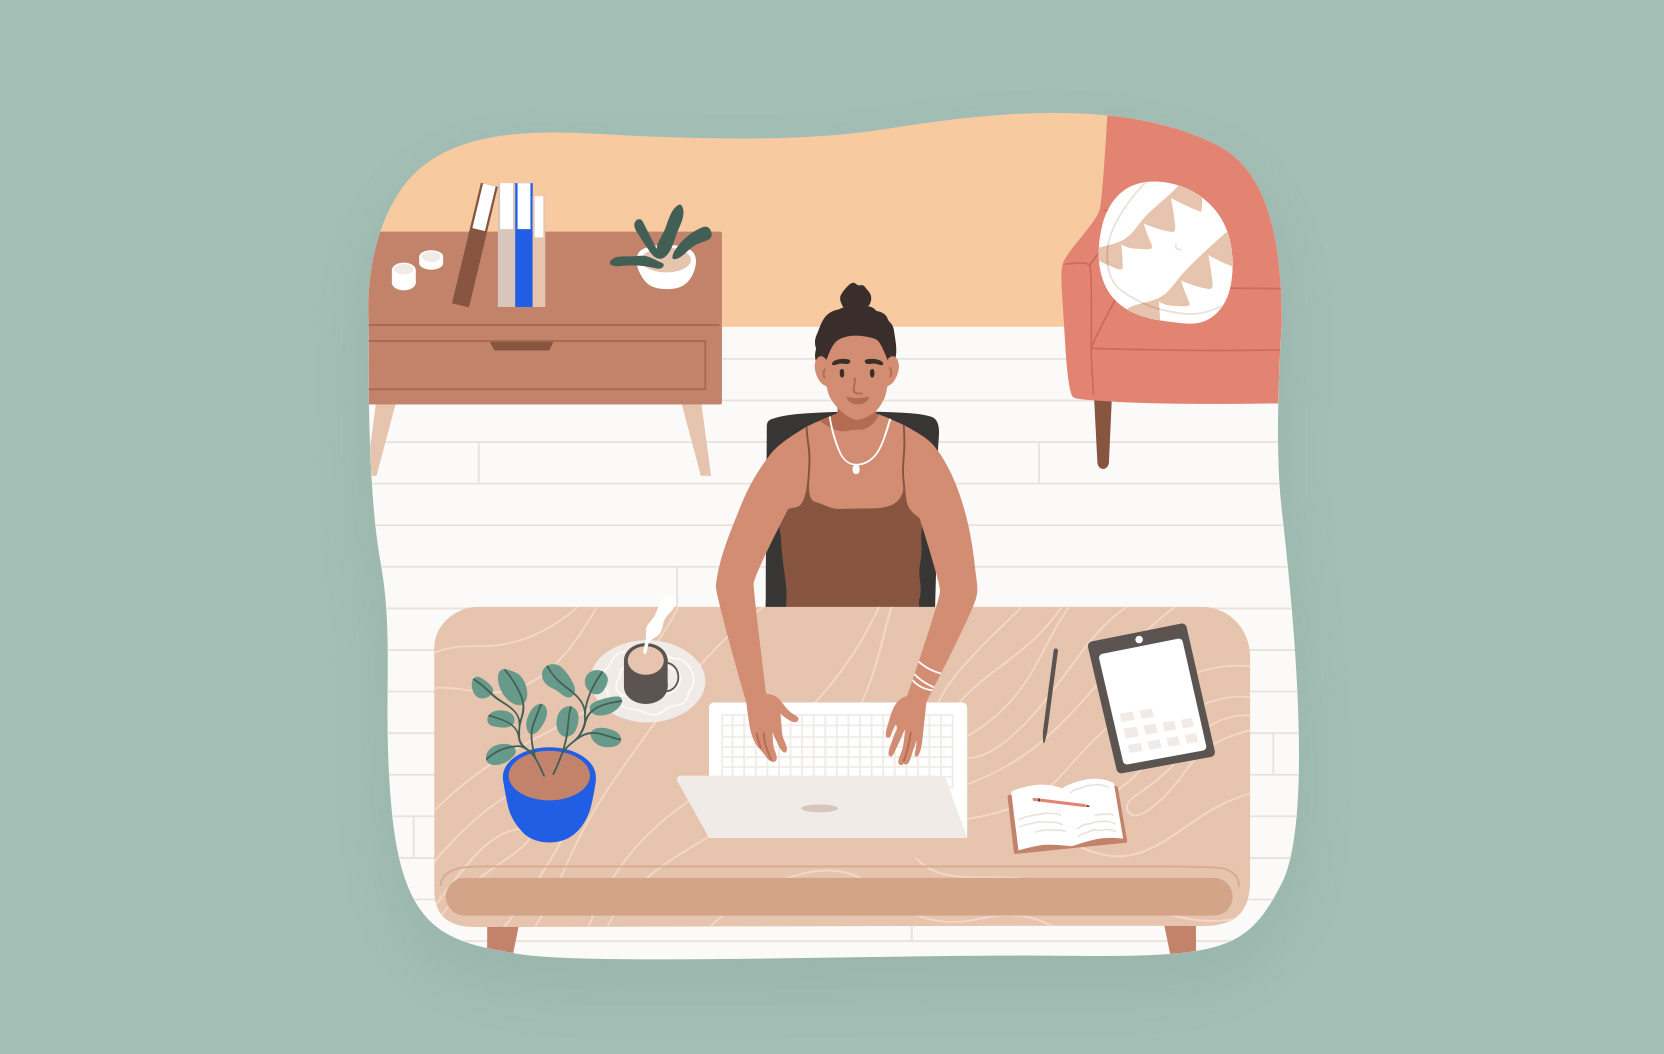 Illustration of a person sitting at a desk typing on their laptop.